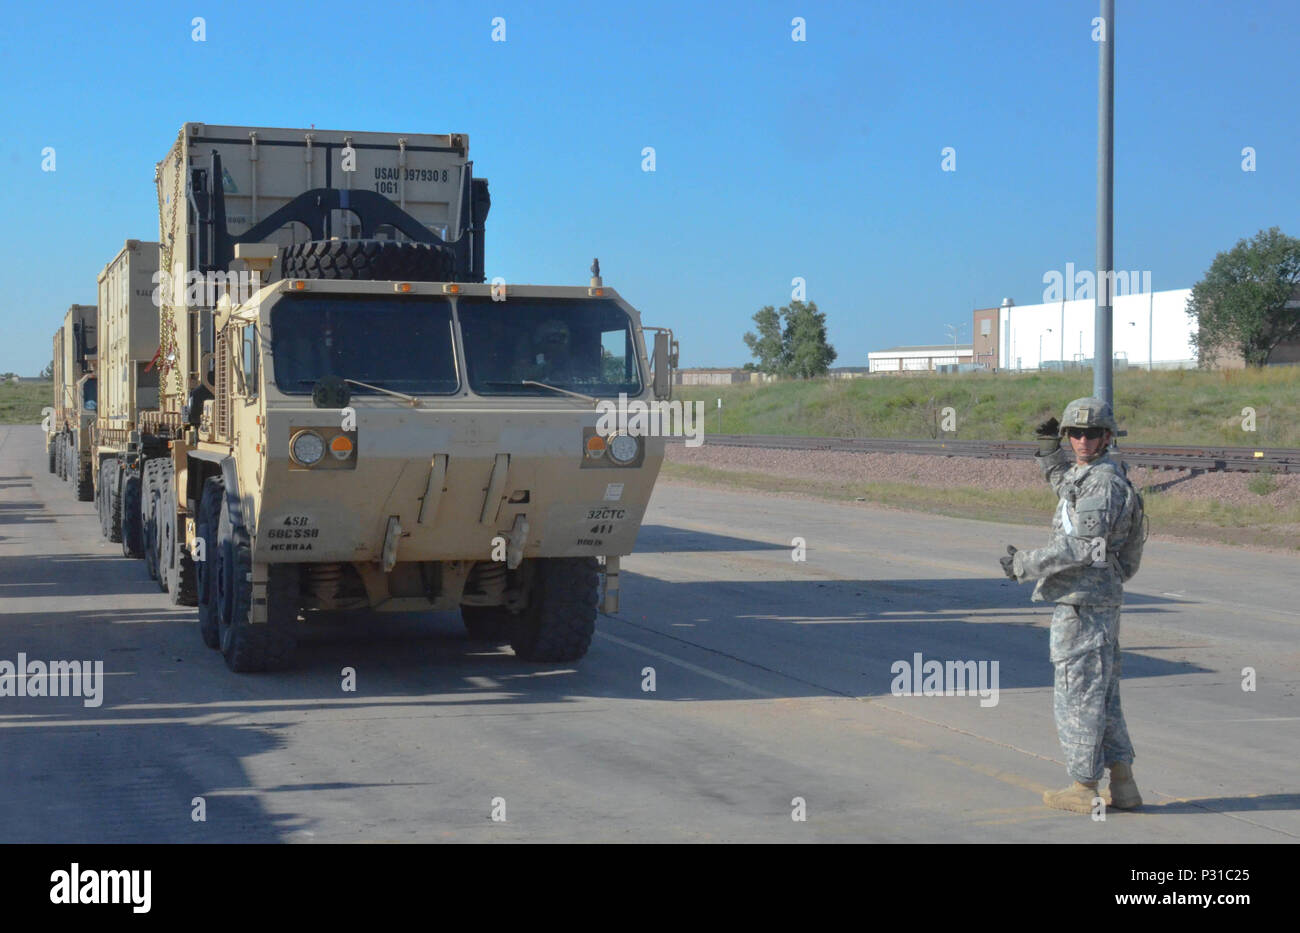 Sgt. Blane Dziolek, 32nd Composite Truck Company, 68th Combat Sustainment Support Battalion, 4th Sustainment Brigade, 4th Infantry Division, ground guides a heavy equipment transport truck at the Fort Carson rail yard Aug. 15. - Stock Image